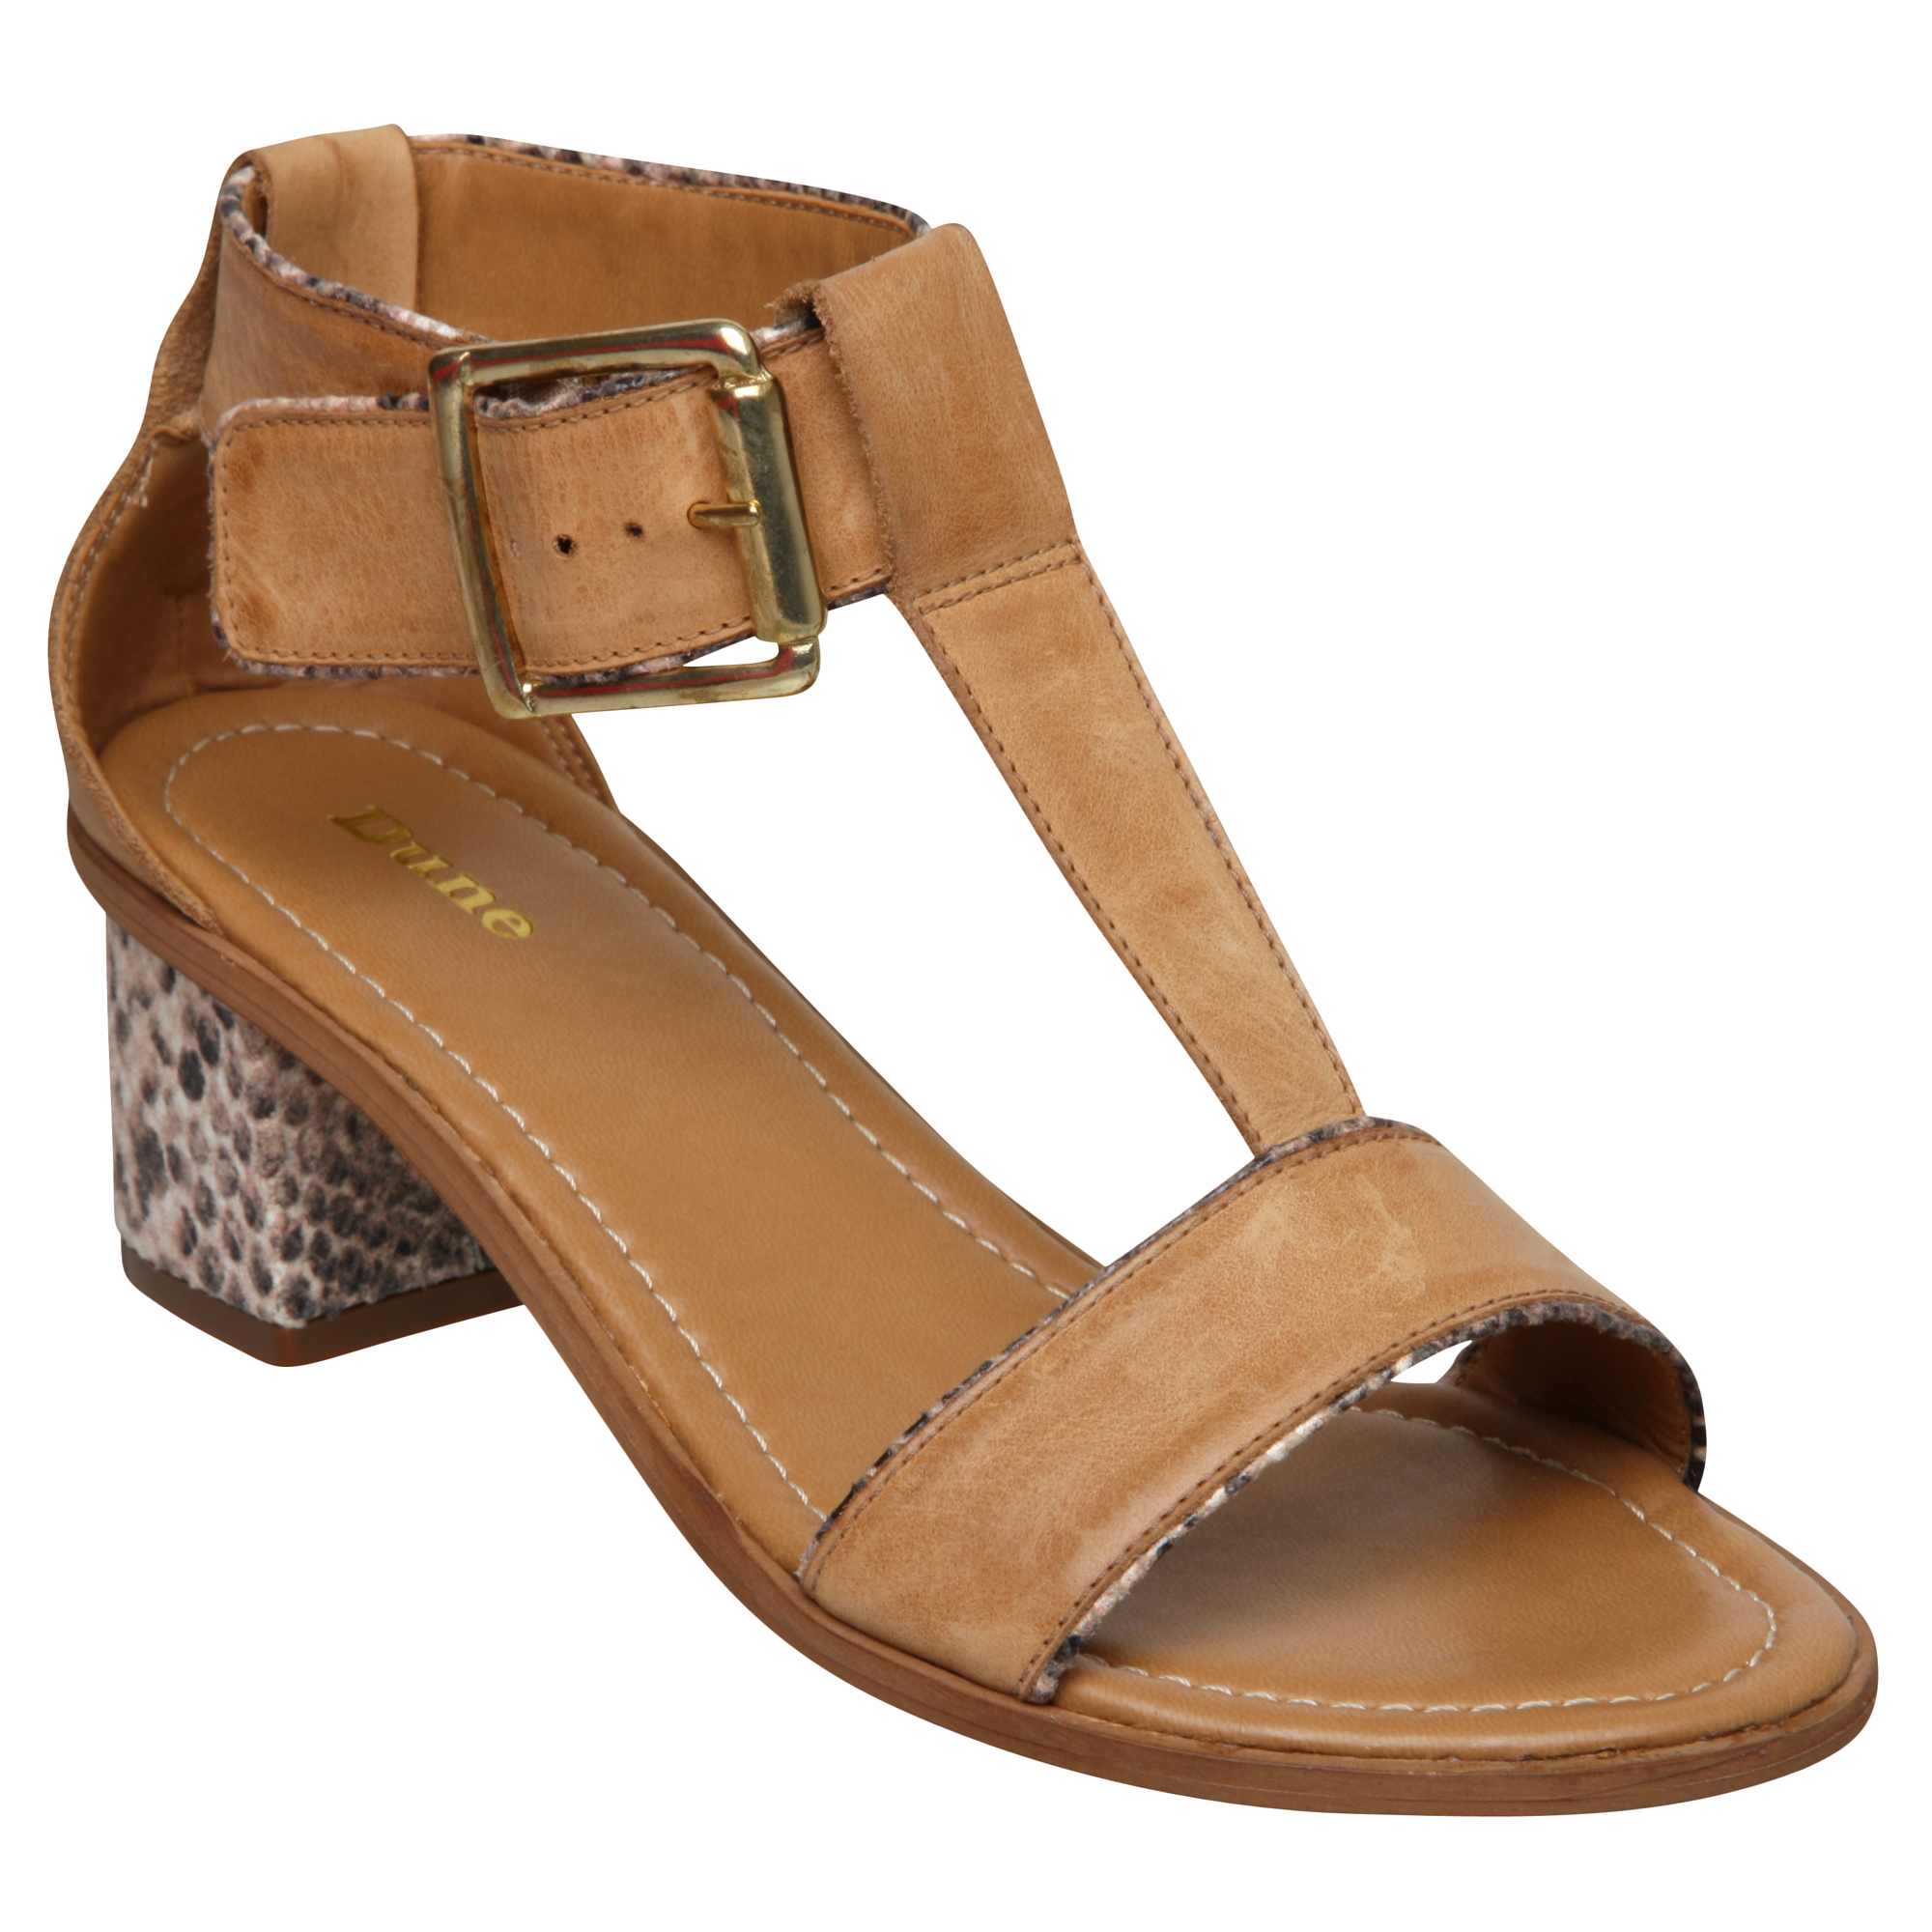 Find great deals on eBay for womens tan shoes. Shop with confidence.